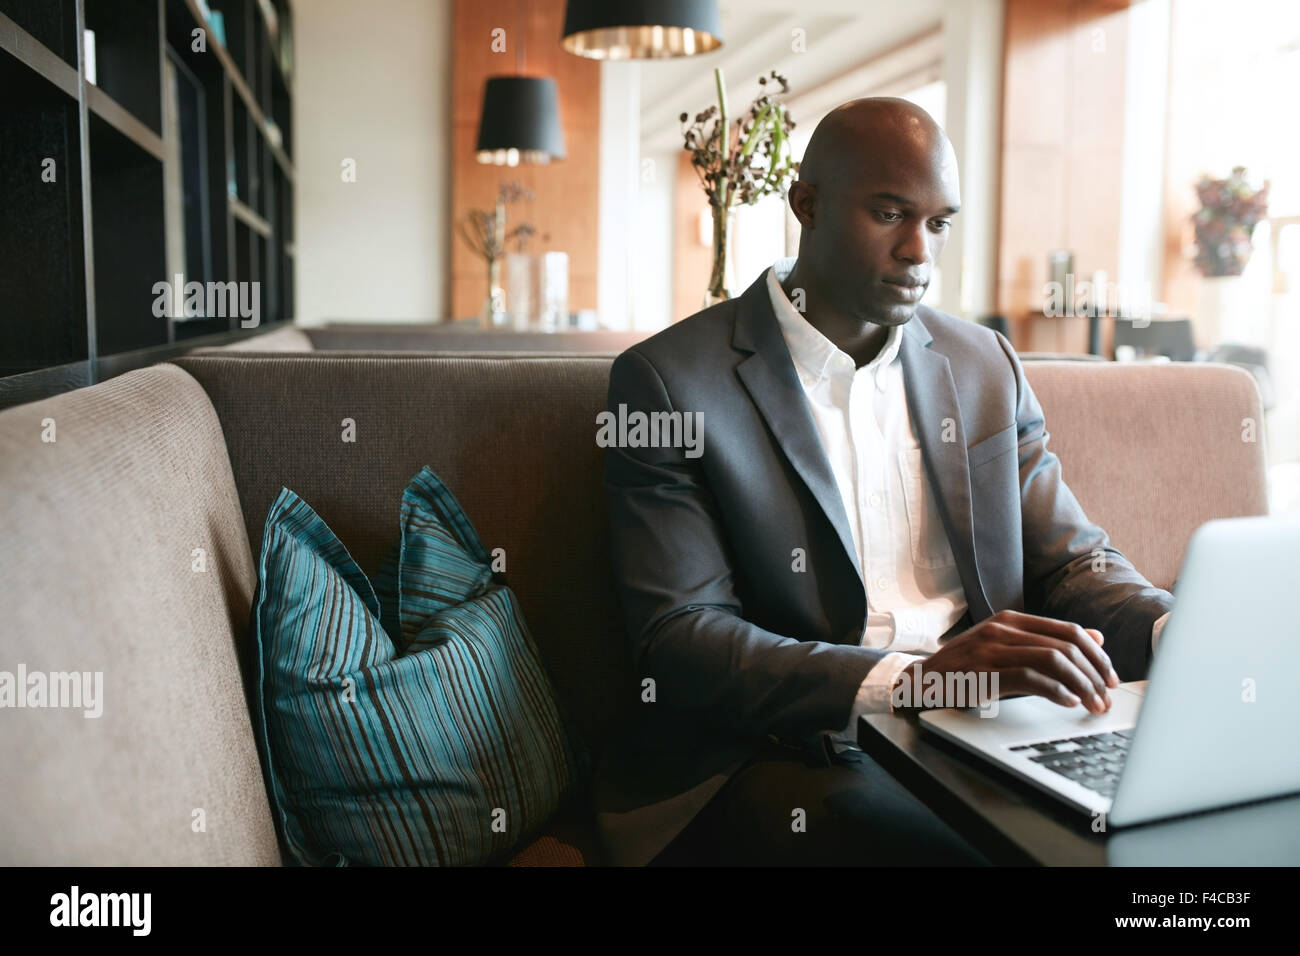 Image of young man sitting at cafe working on laptop. African businessman at coffee shop surfing internet on laptop. - Stock Image